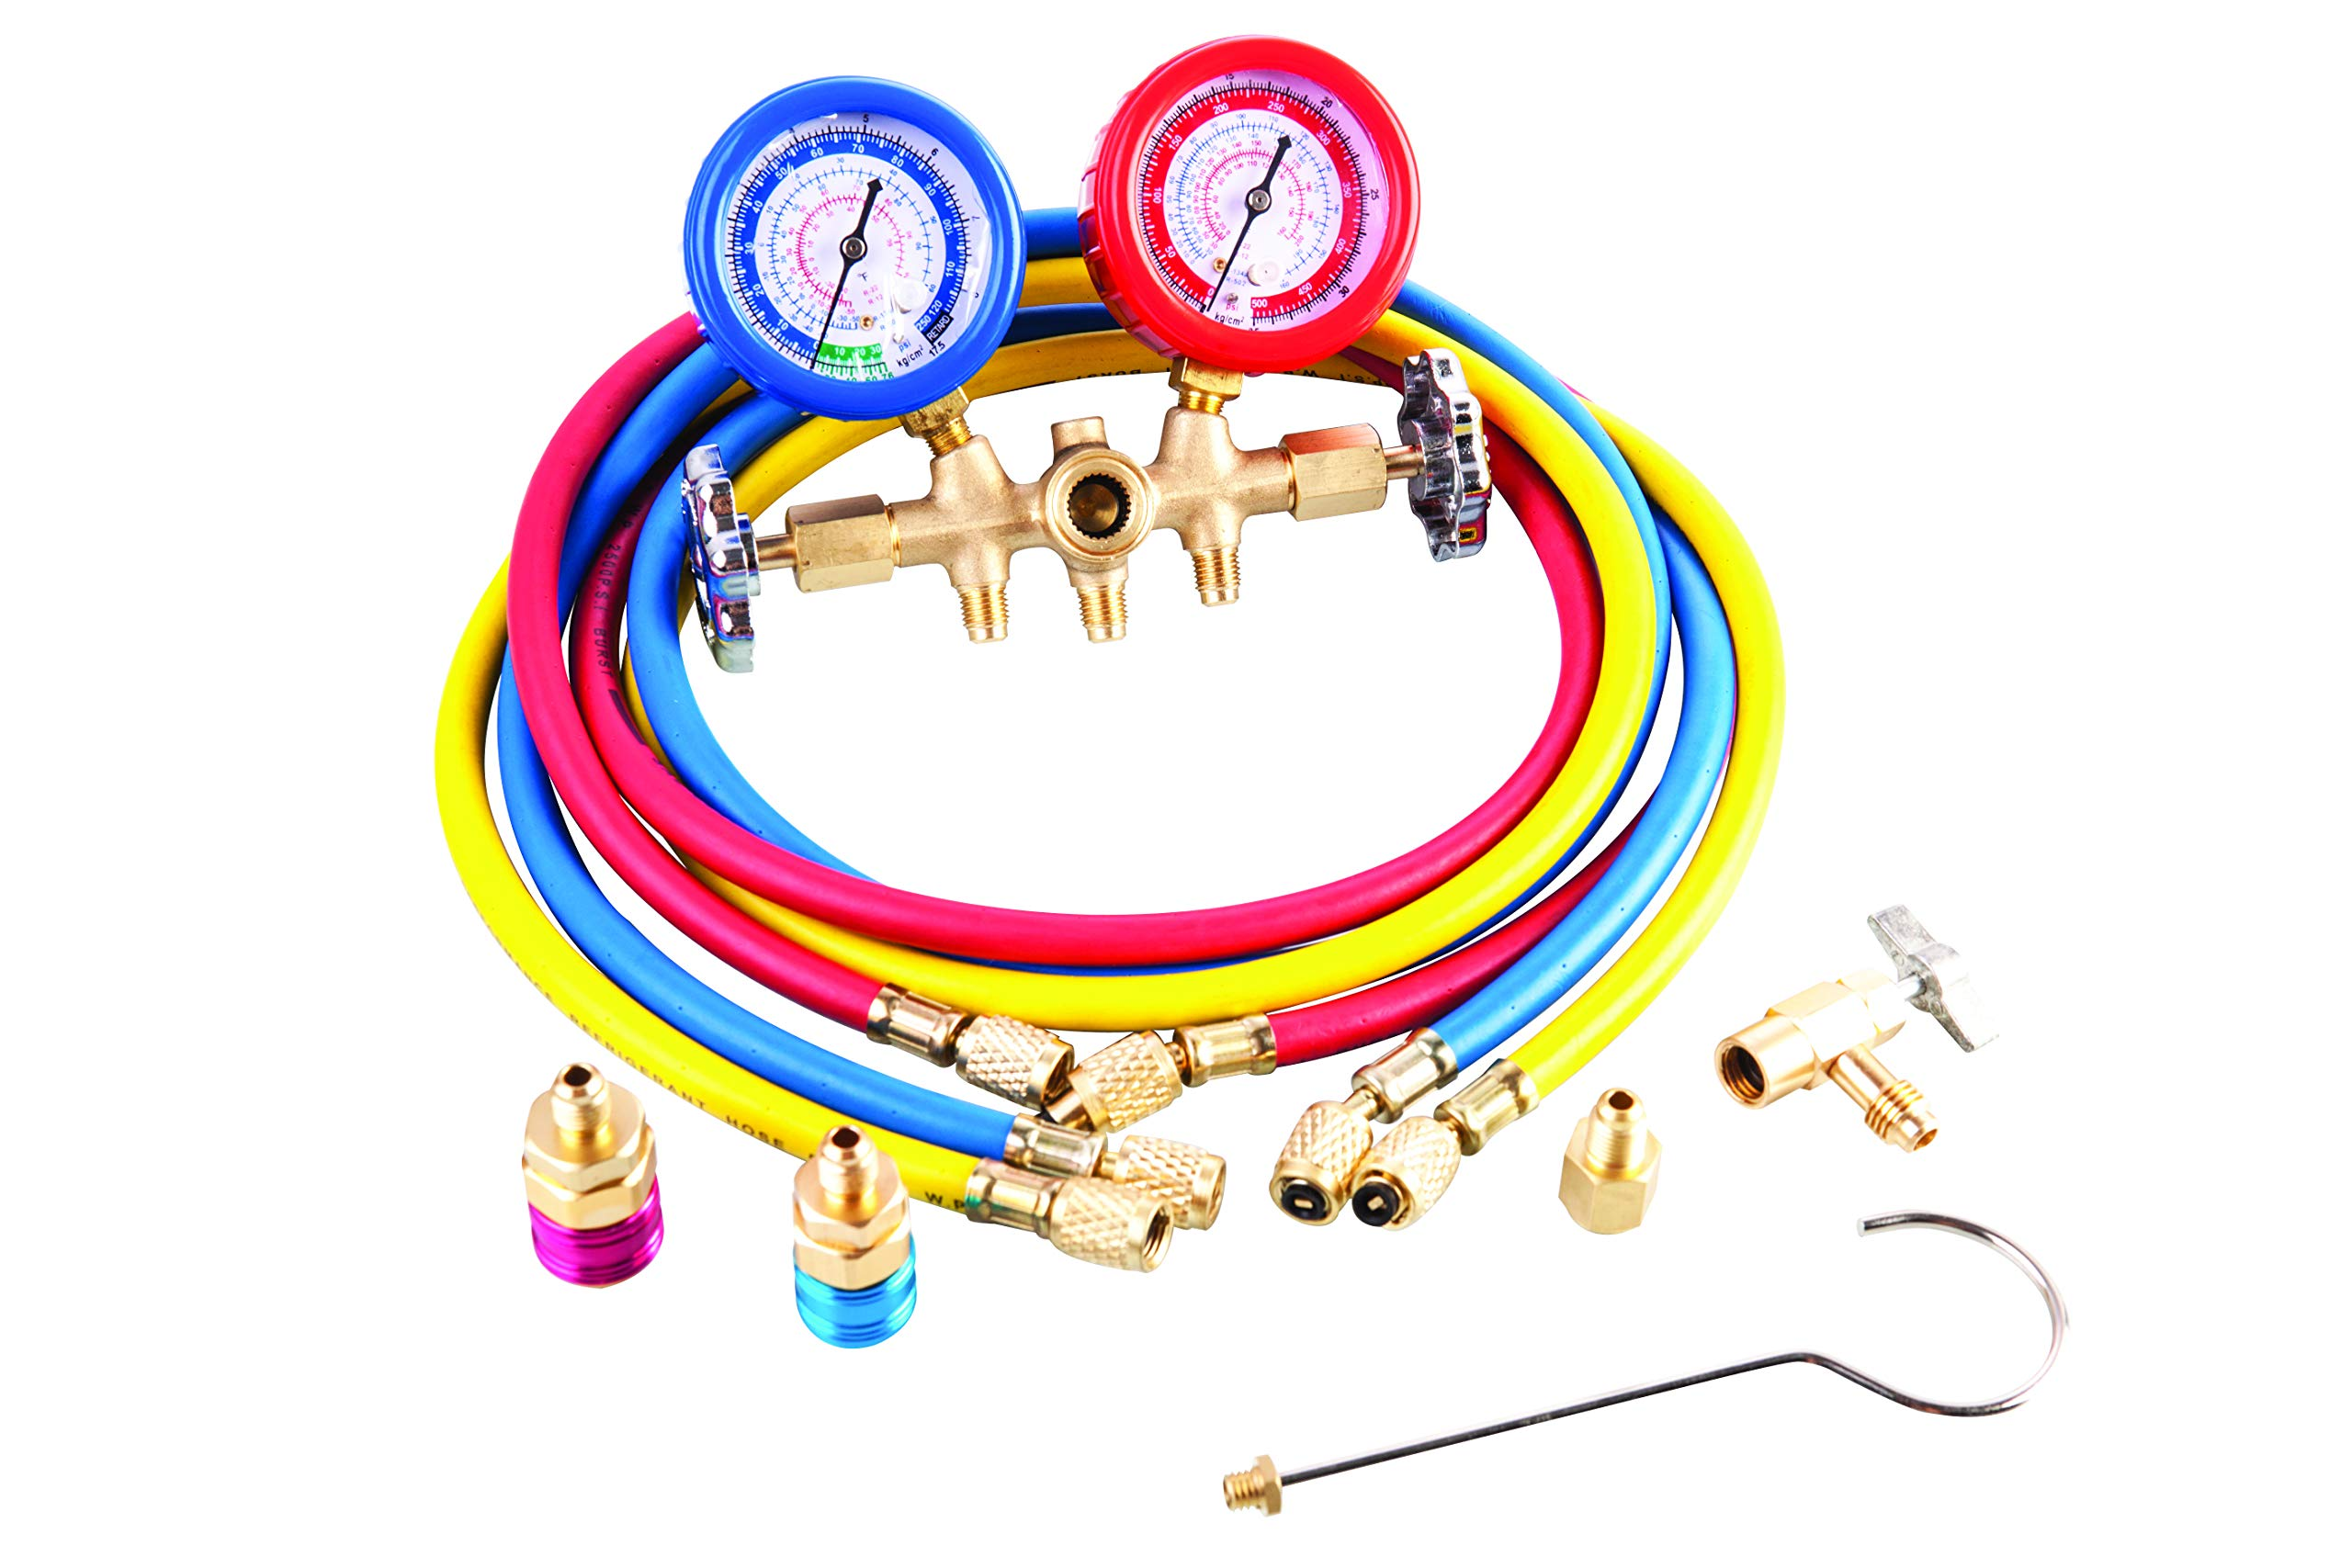 Aain 1002 AC Diagnostic Manifold Freon Gauge Set for R134A R12, R22, R502 Refrigerants, with Couplers and Acme Adapter